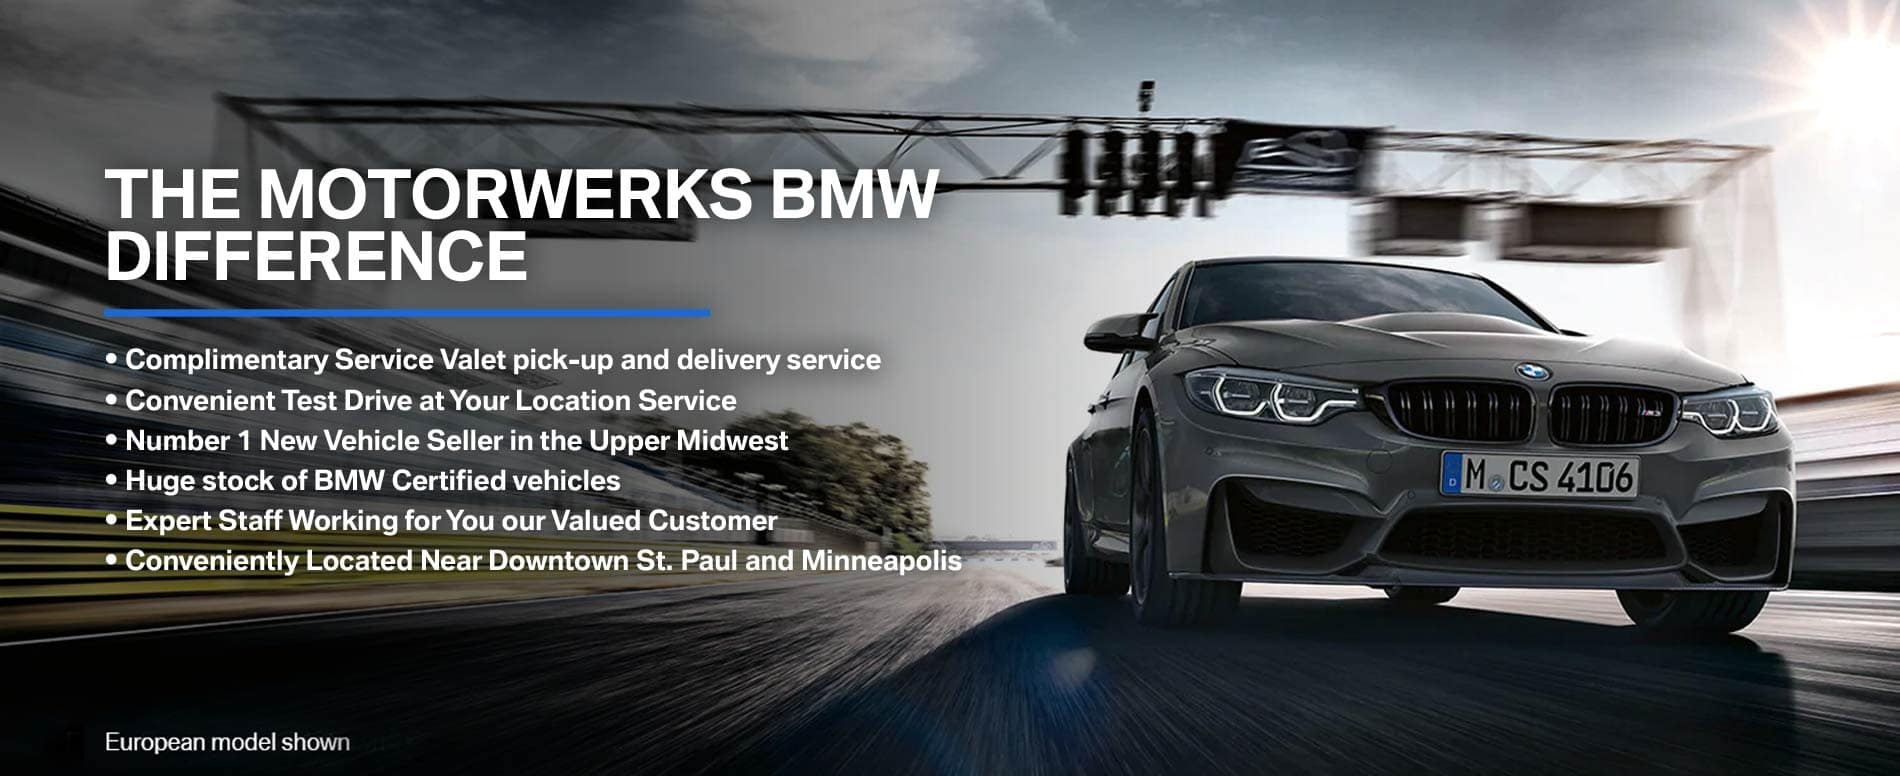 The Motorwerks BMW difference banner